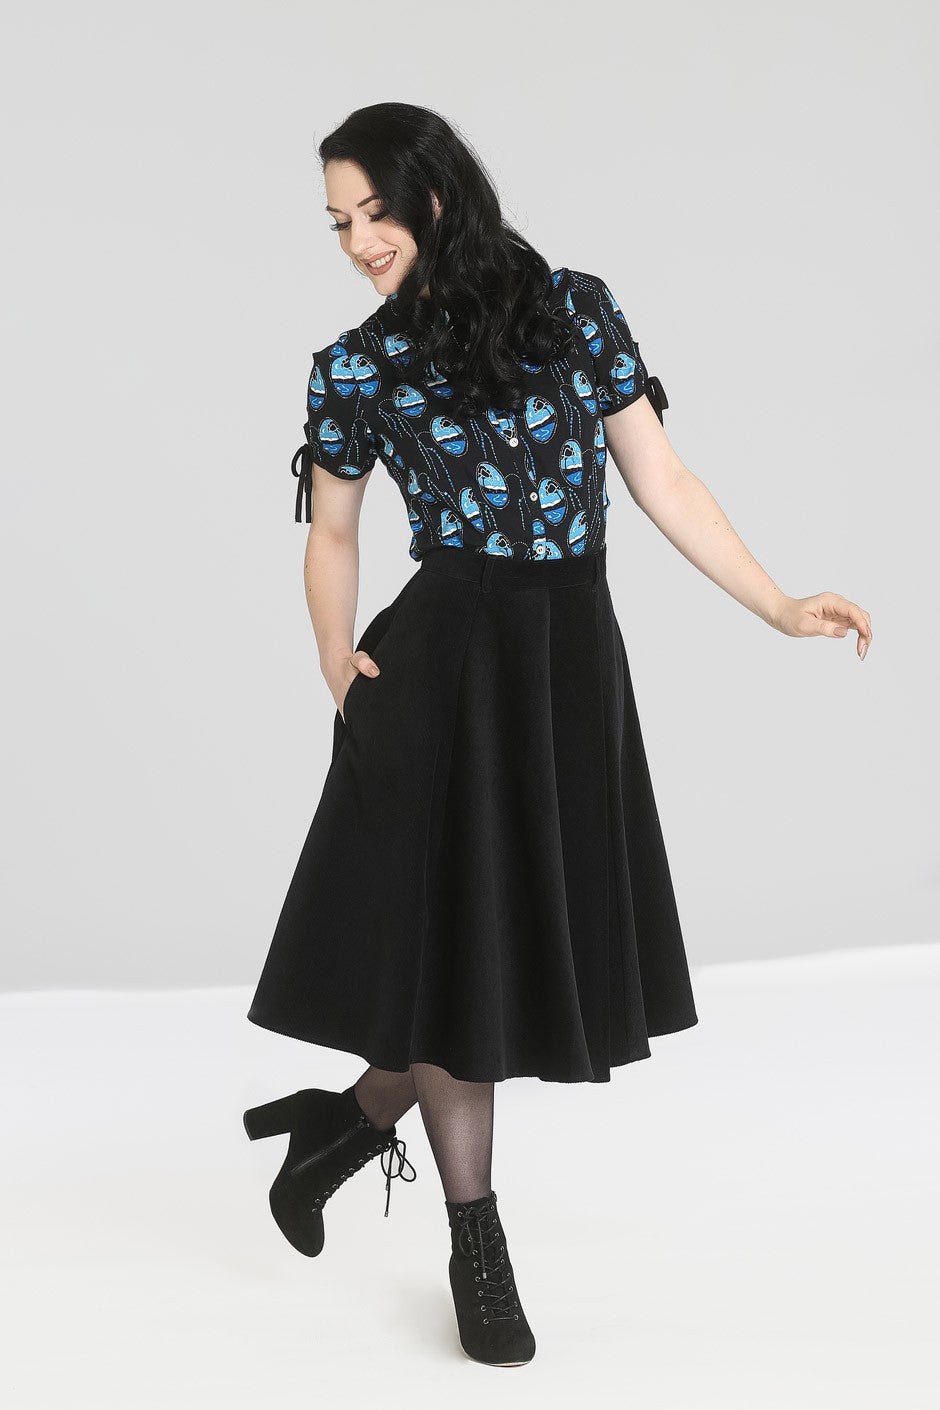 Jefferson Skirt in Fine Corduroy by Hell Bunny